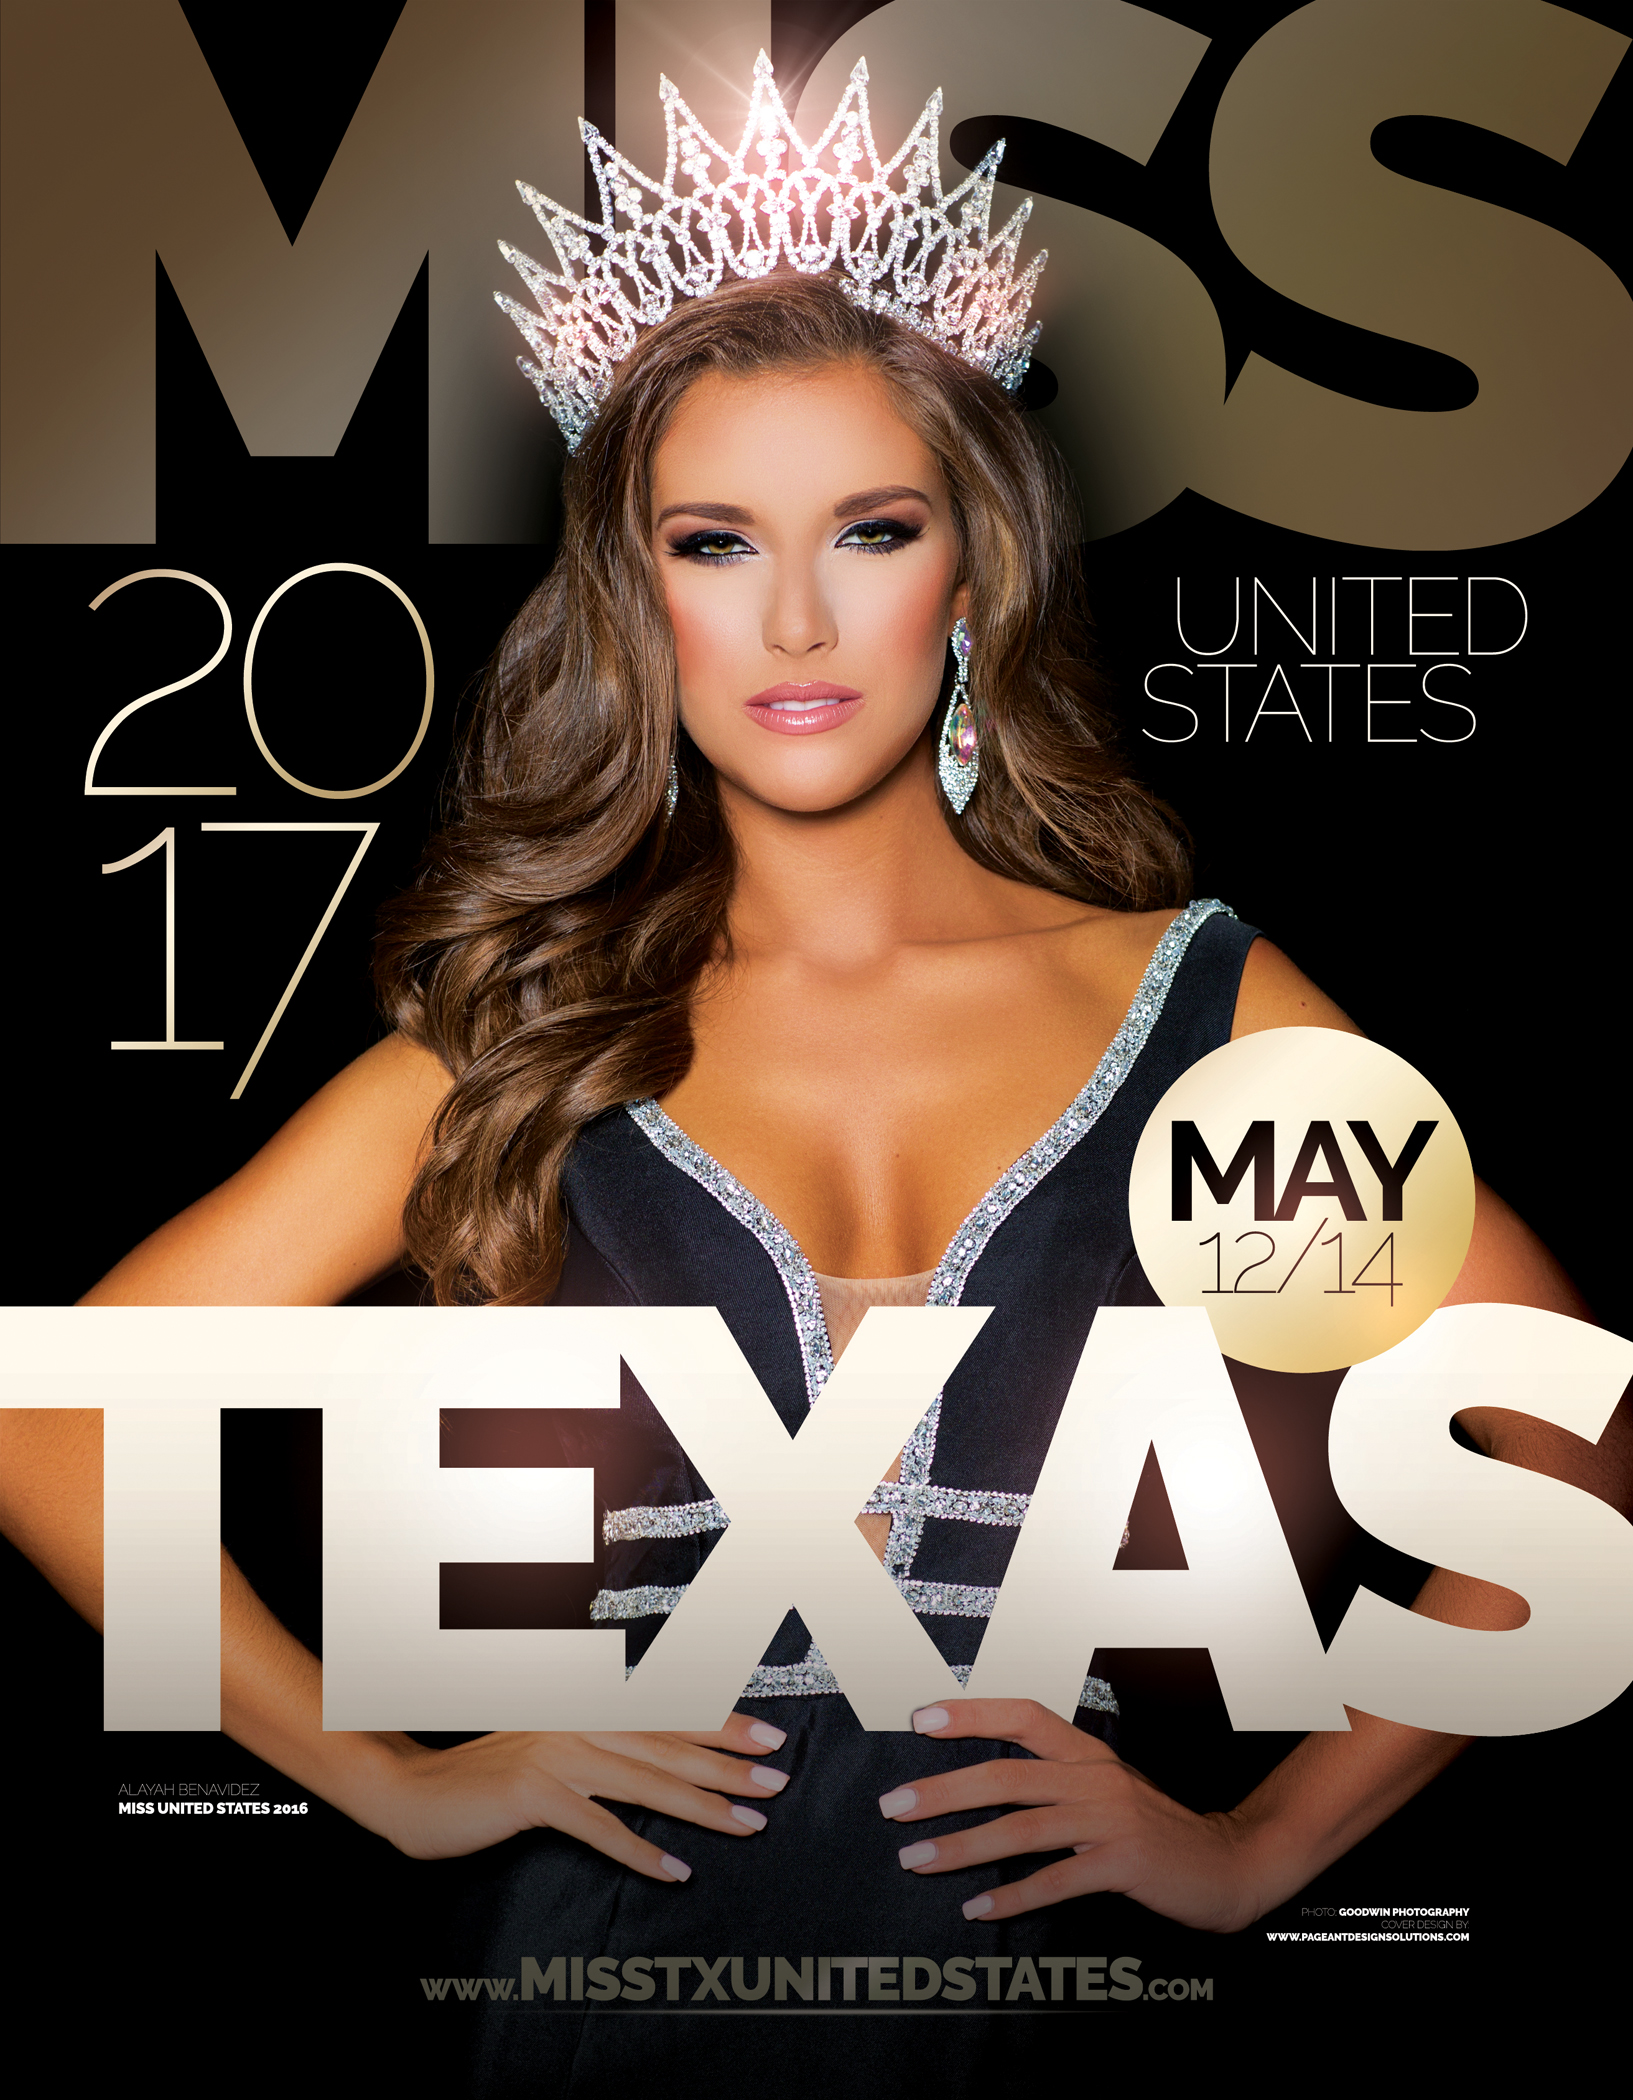 Pageant Program Book Design